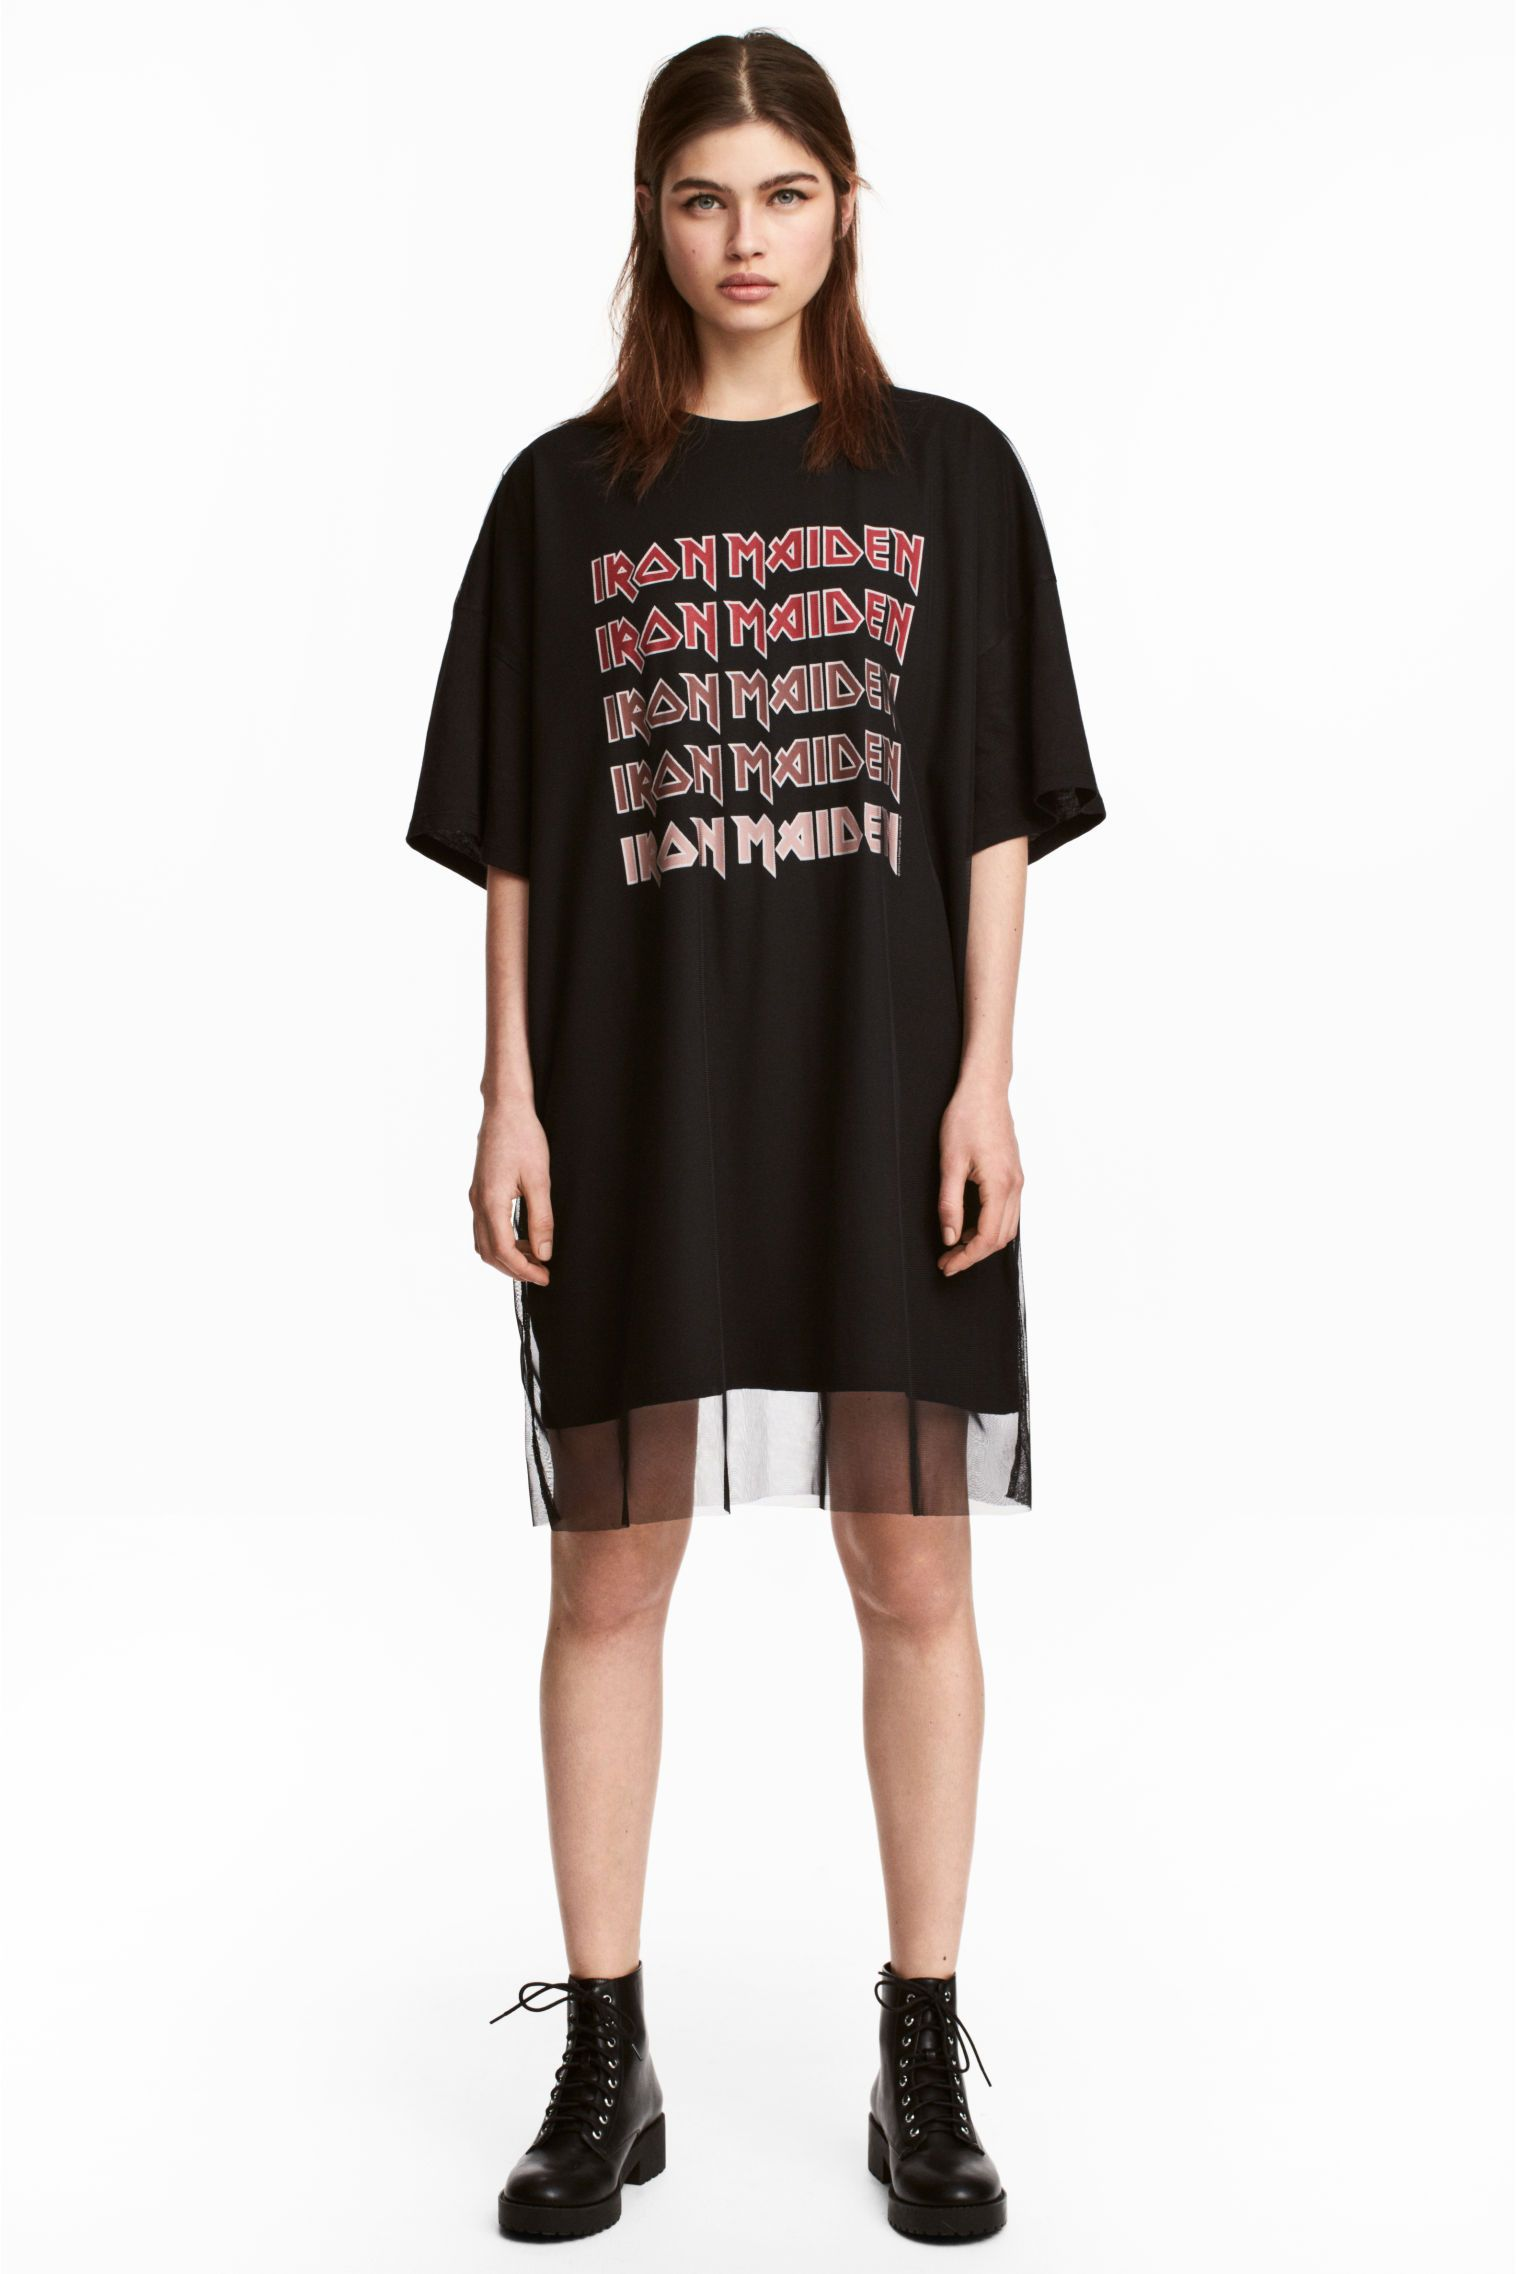 b4fab59e329 Short T-shirt dress in cotton jersey with a print motif on the front.  Overlayered with mesh front and back.